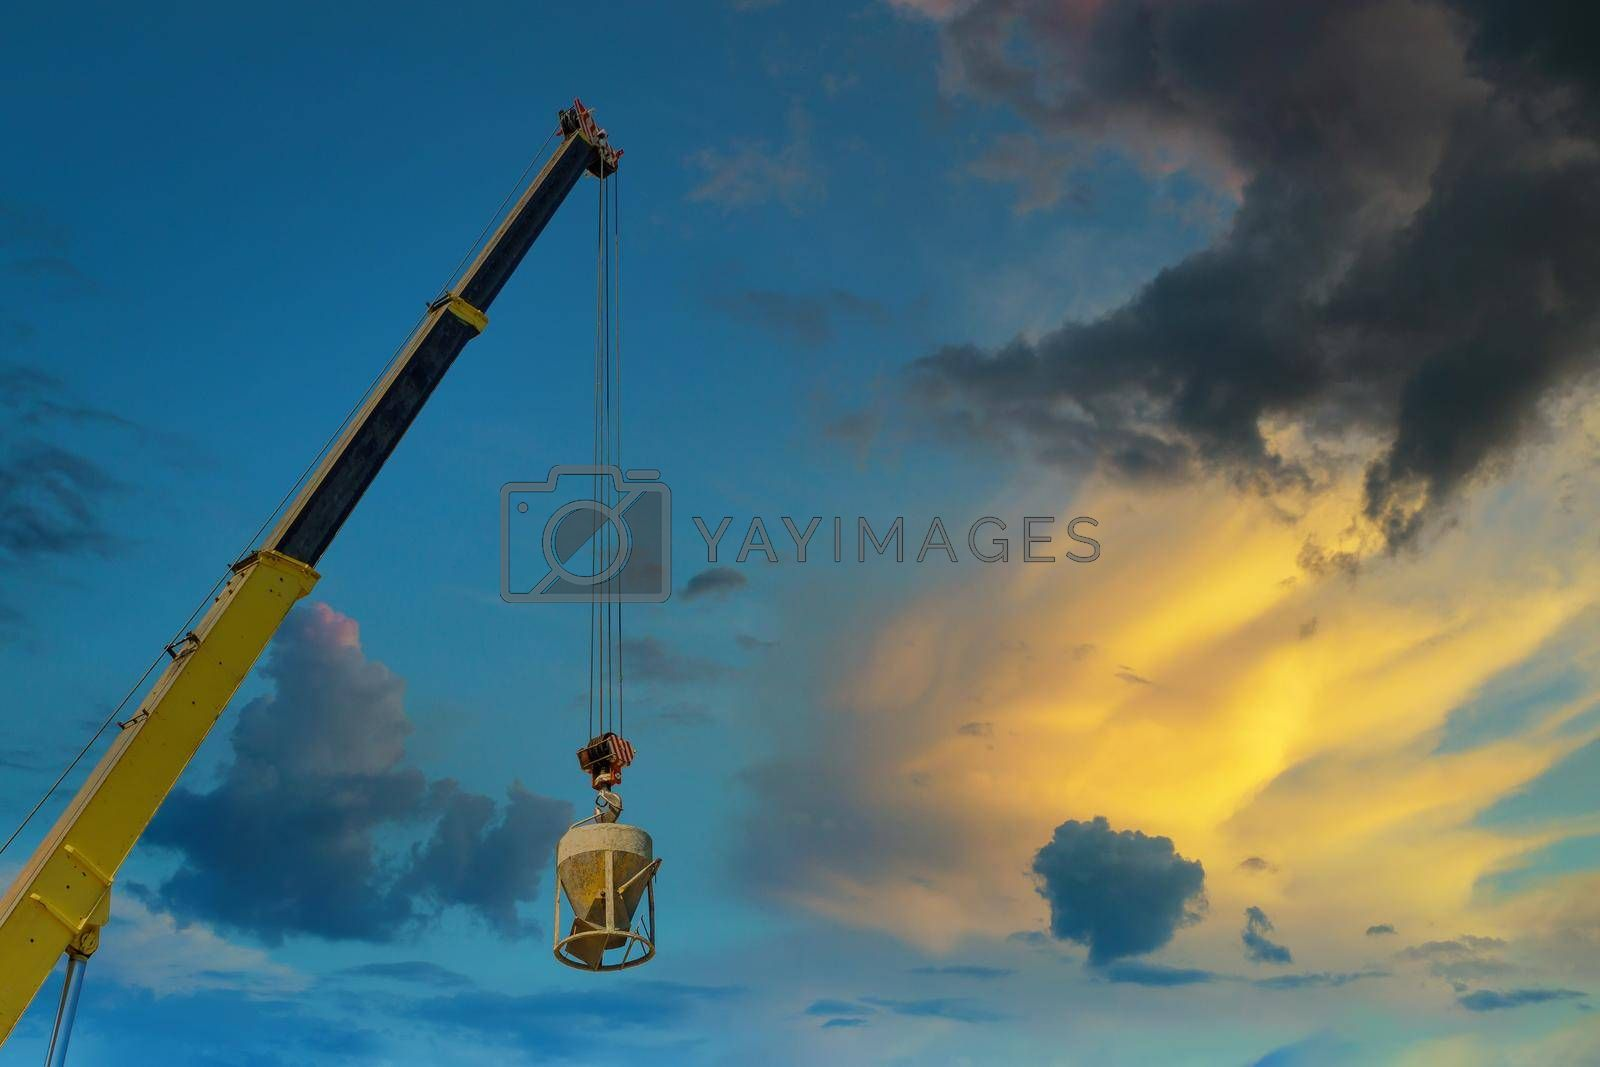 Working at height equipment with bucket liquid concrete container with hanging on crane hook in construction site building industry